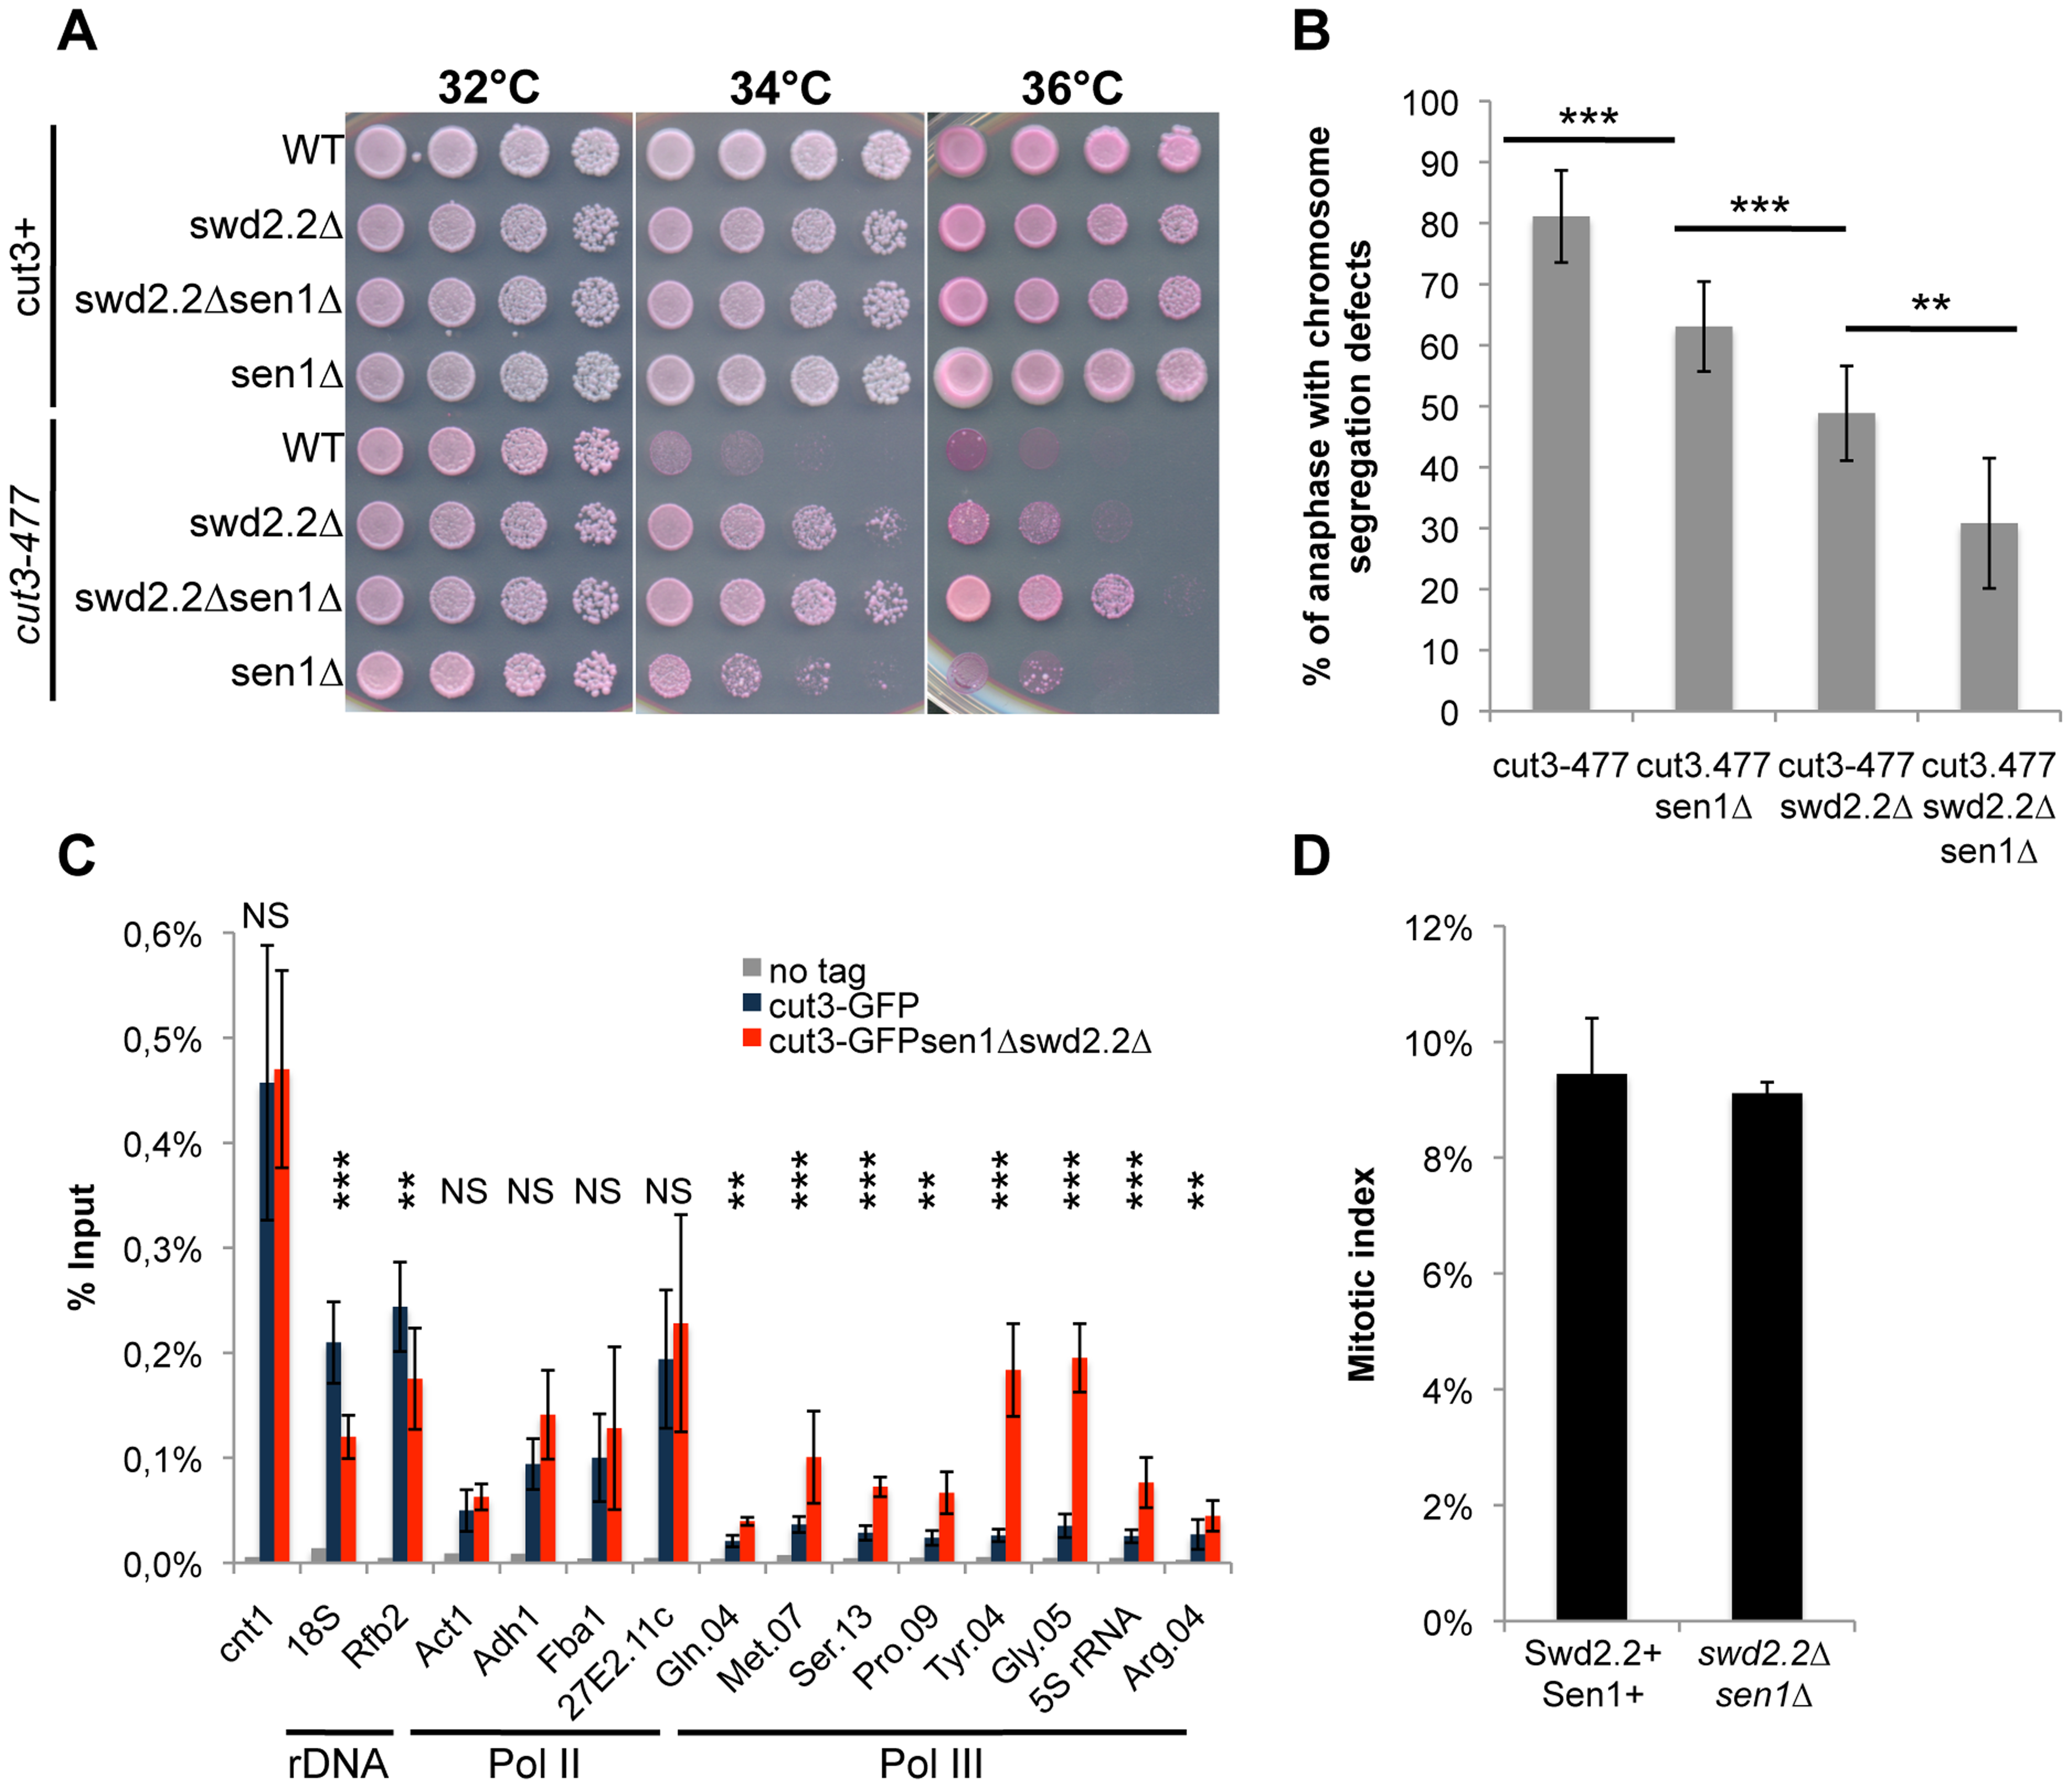 The double deletion of Swd2.2 and Sen1 facilitates the localization of condensin at Pol III-transcribed genes.